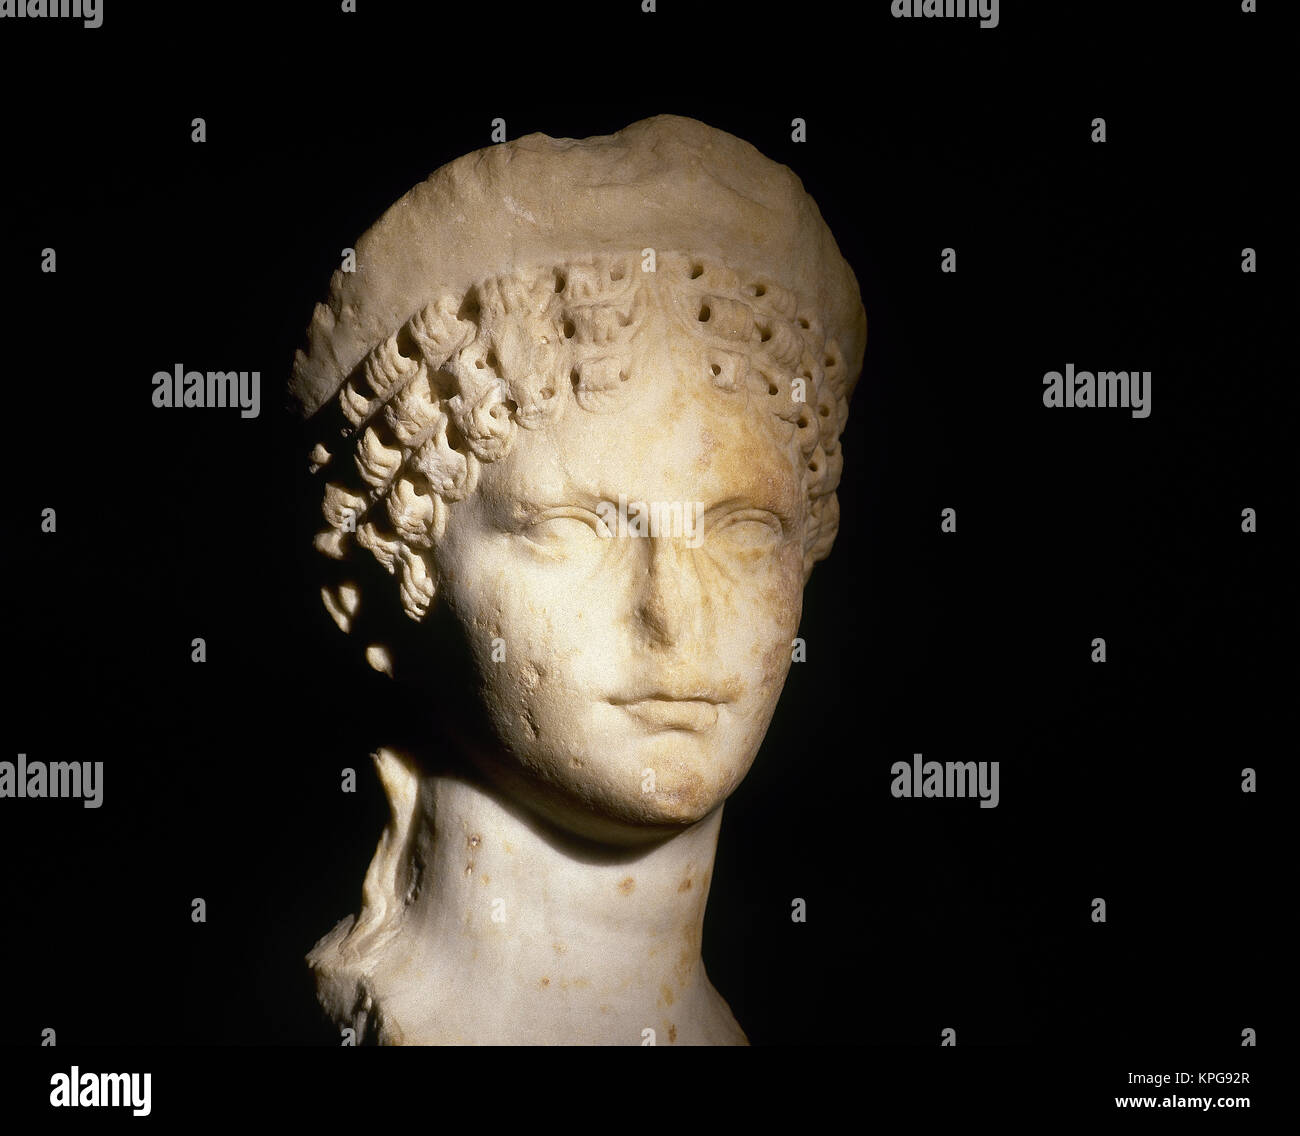 Agrippina the Younger (15-49 AD). Roman empress consort. Julio-Clauidian dynasty. Wife of Claudius. Bust. 1st century. - Stock Image